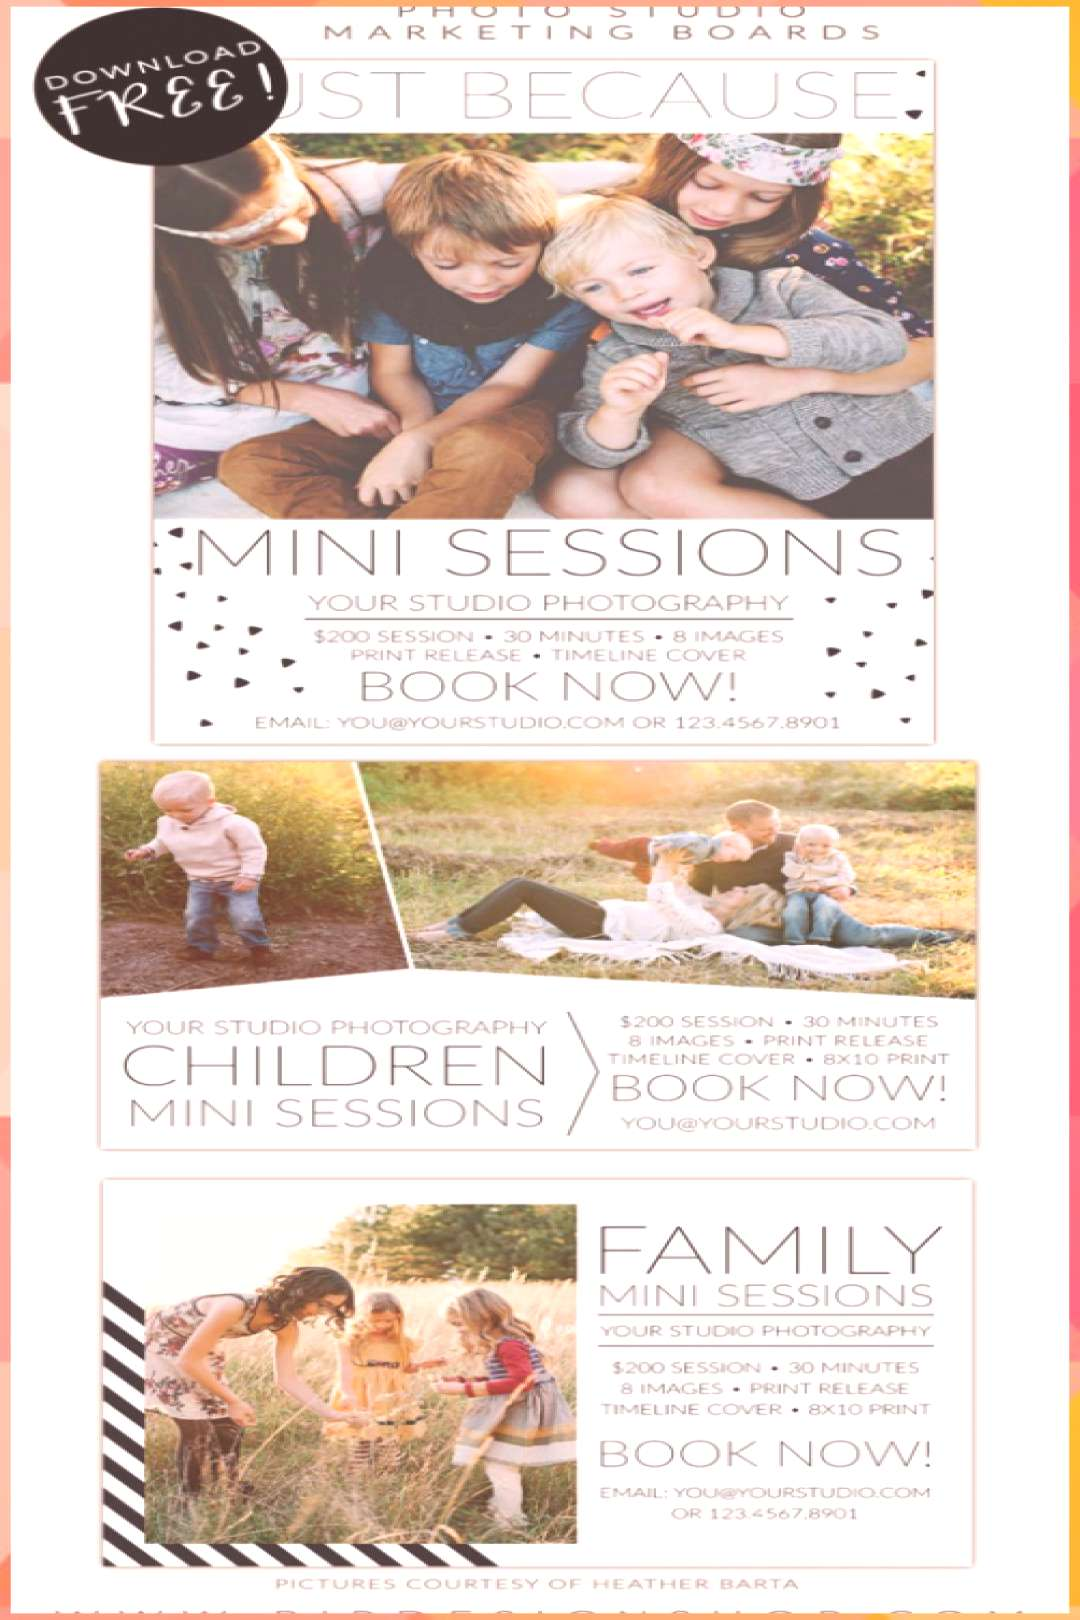 Happy Holidays and FREE marketing boards | Photoshop templates for photographers...